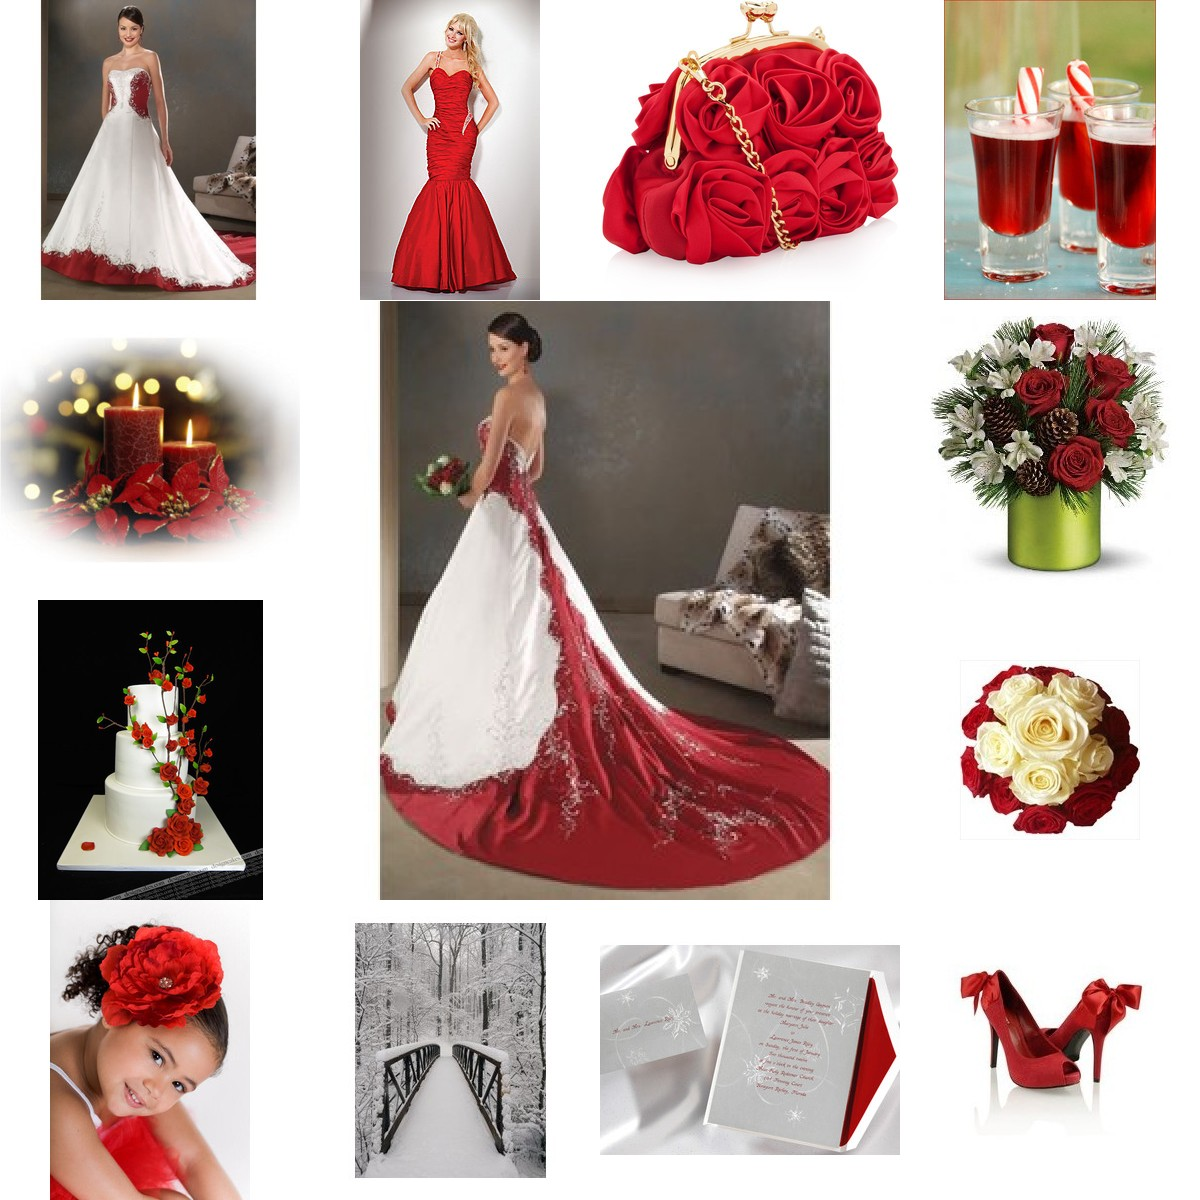 A Christmas Wedding: Www.WEDDINGCANDYNOW: SPRING SUMMER WEDDING INSPIRATION